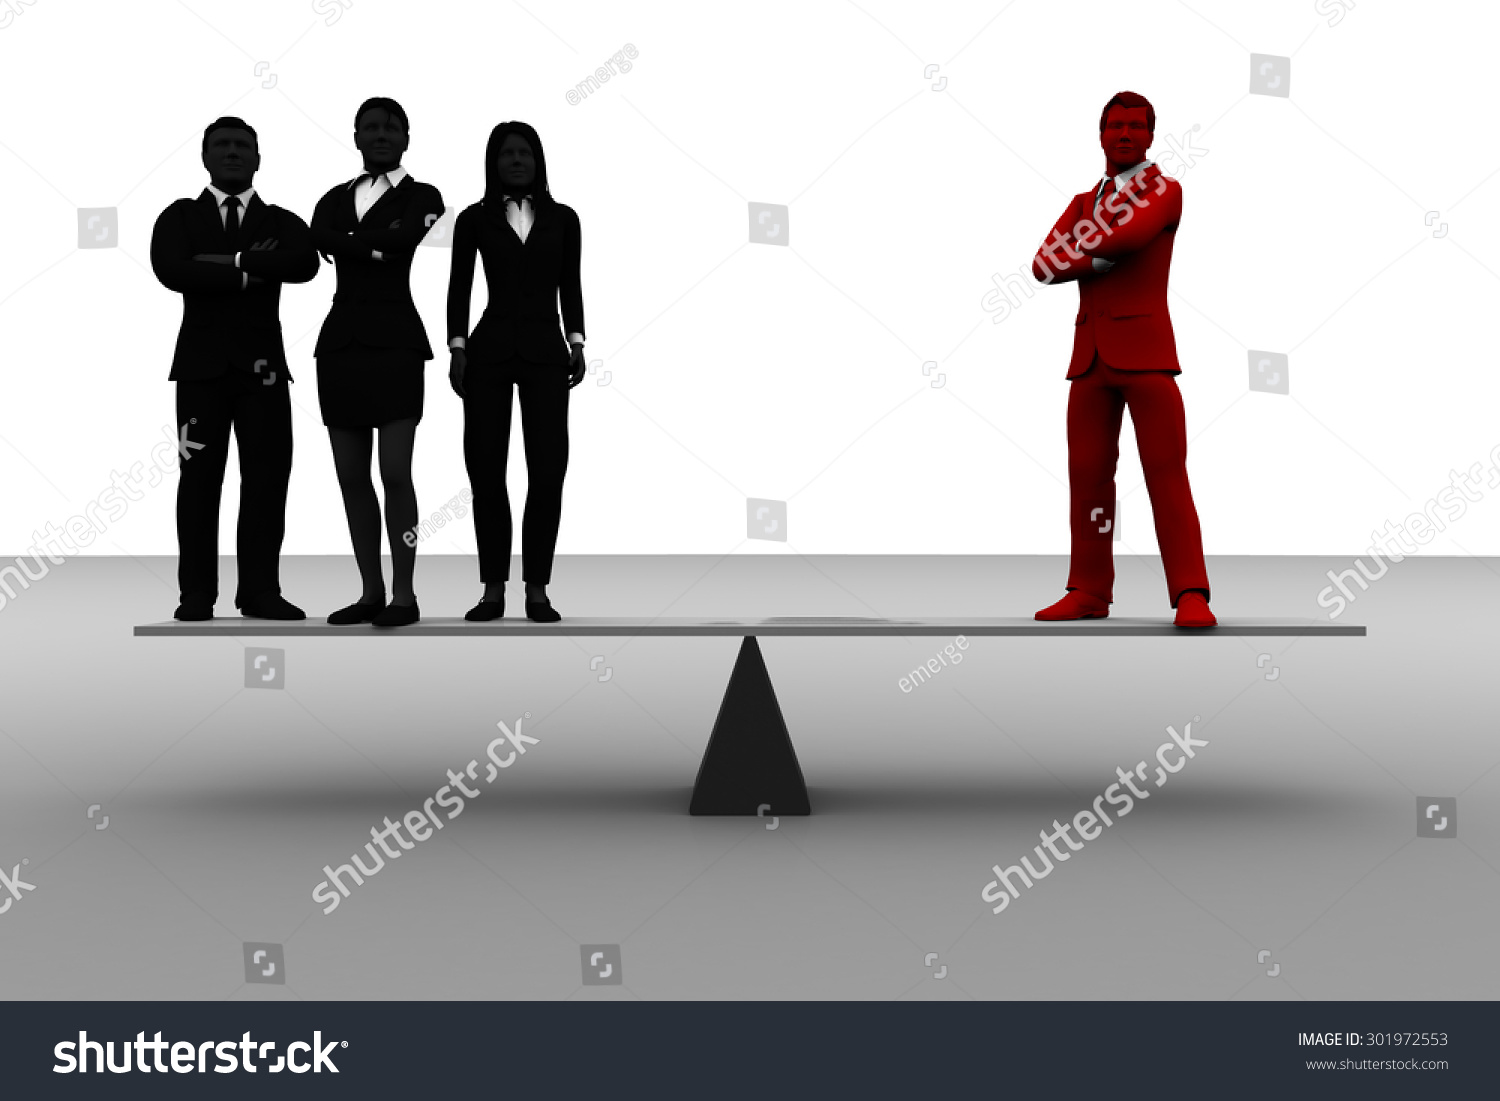 valuable team leader on balance team stock illustration 301972553 valuable team leader on balance a team a team of three successful executives stands